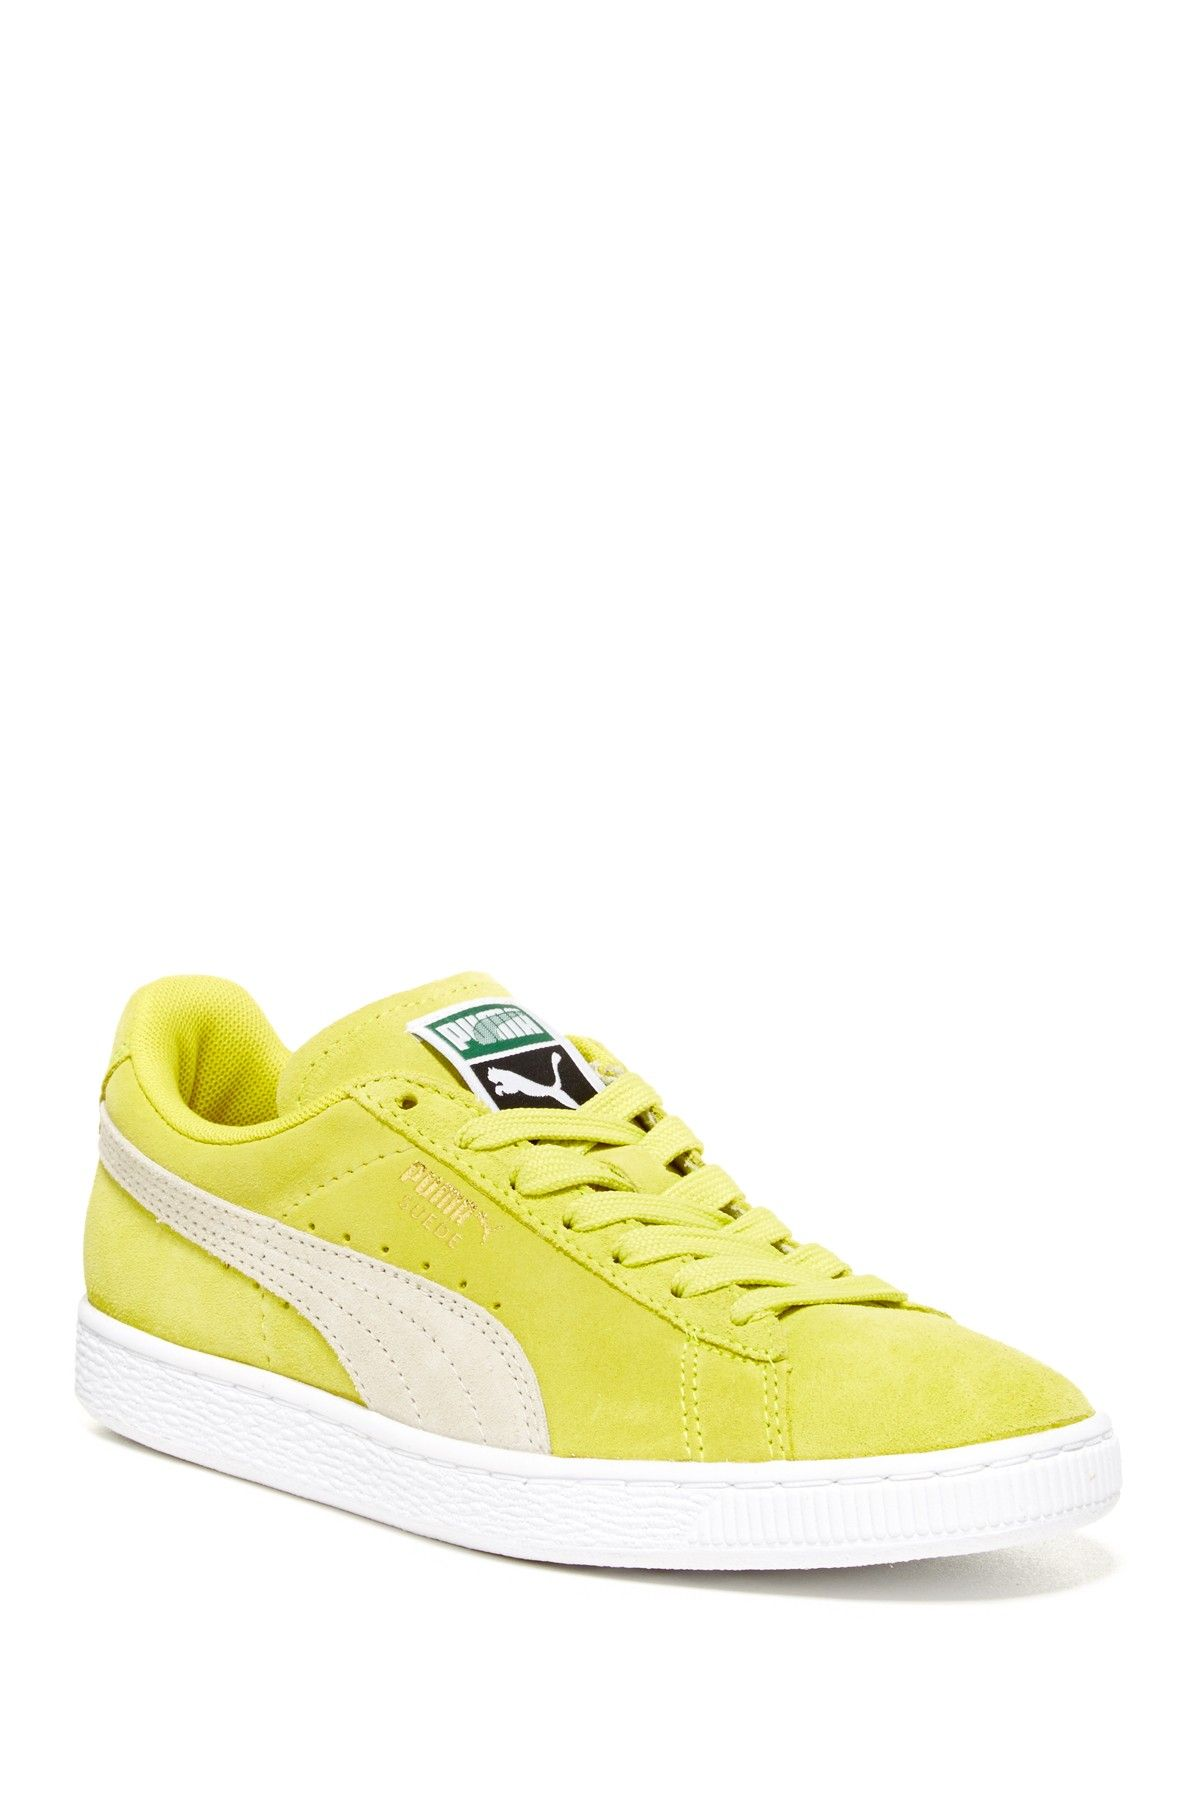 PUMA Suede Classic Sneaker love this color | Classic